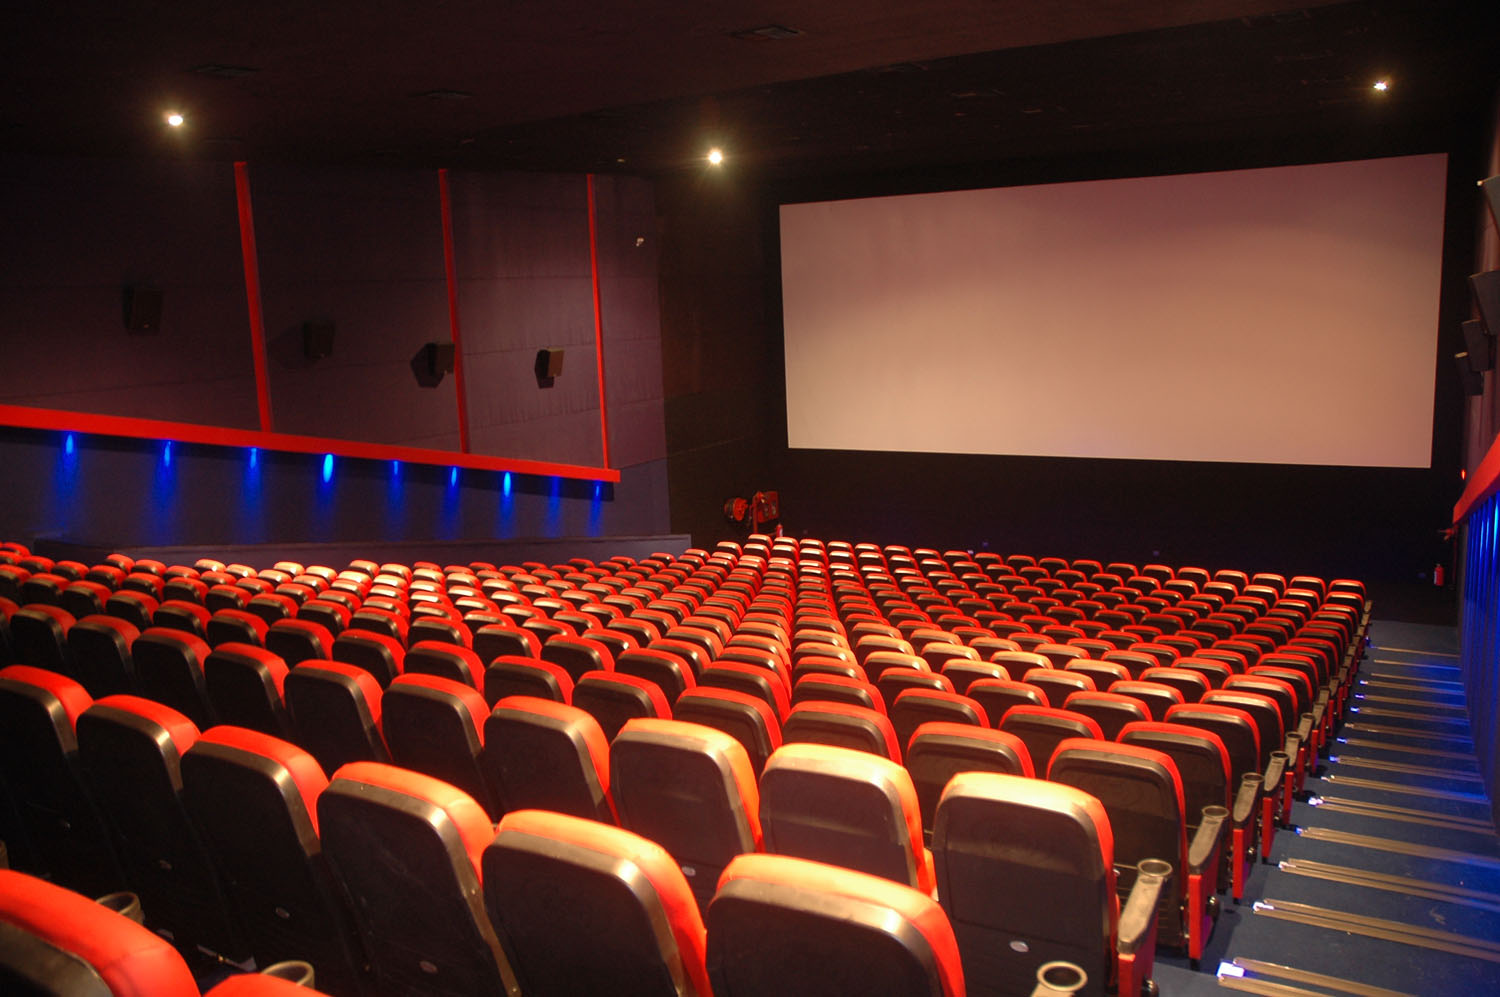 Multiplexes across Chennai go on an indefinite strike after government decides to levy entertainment tax - Pinkvilla - News